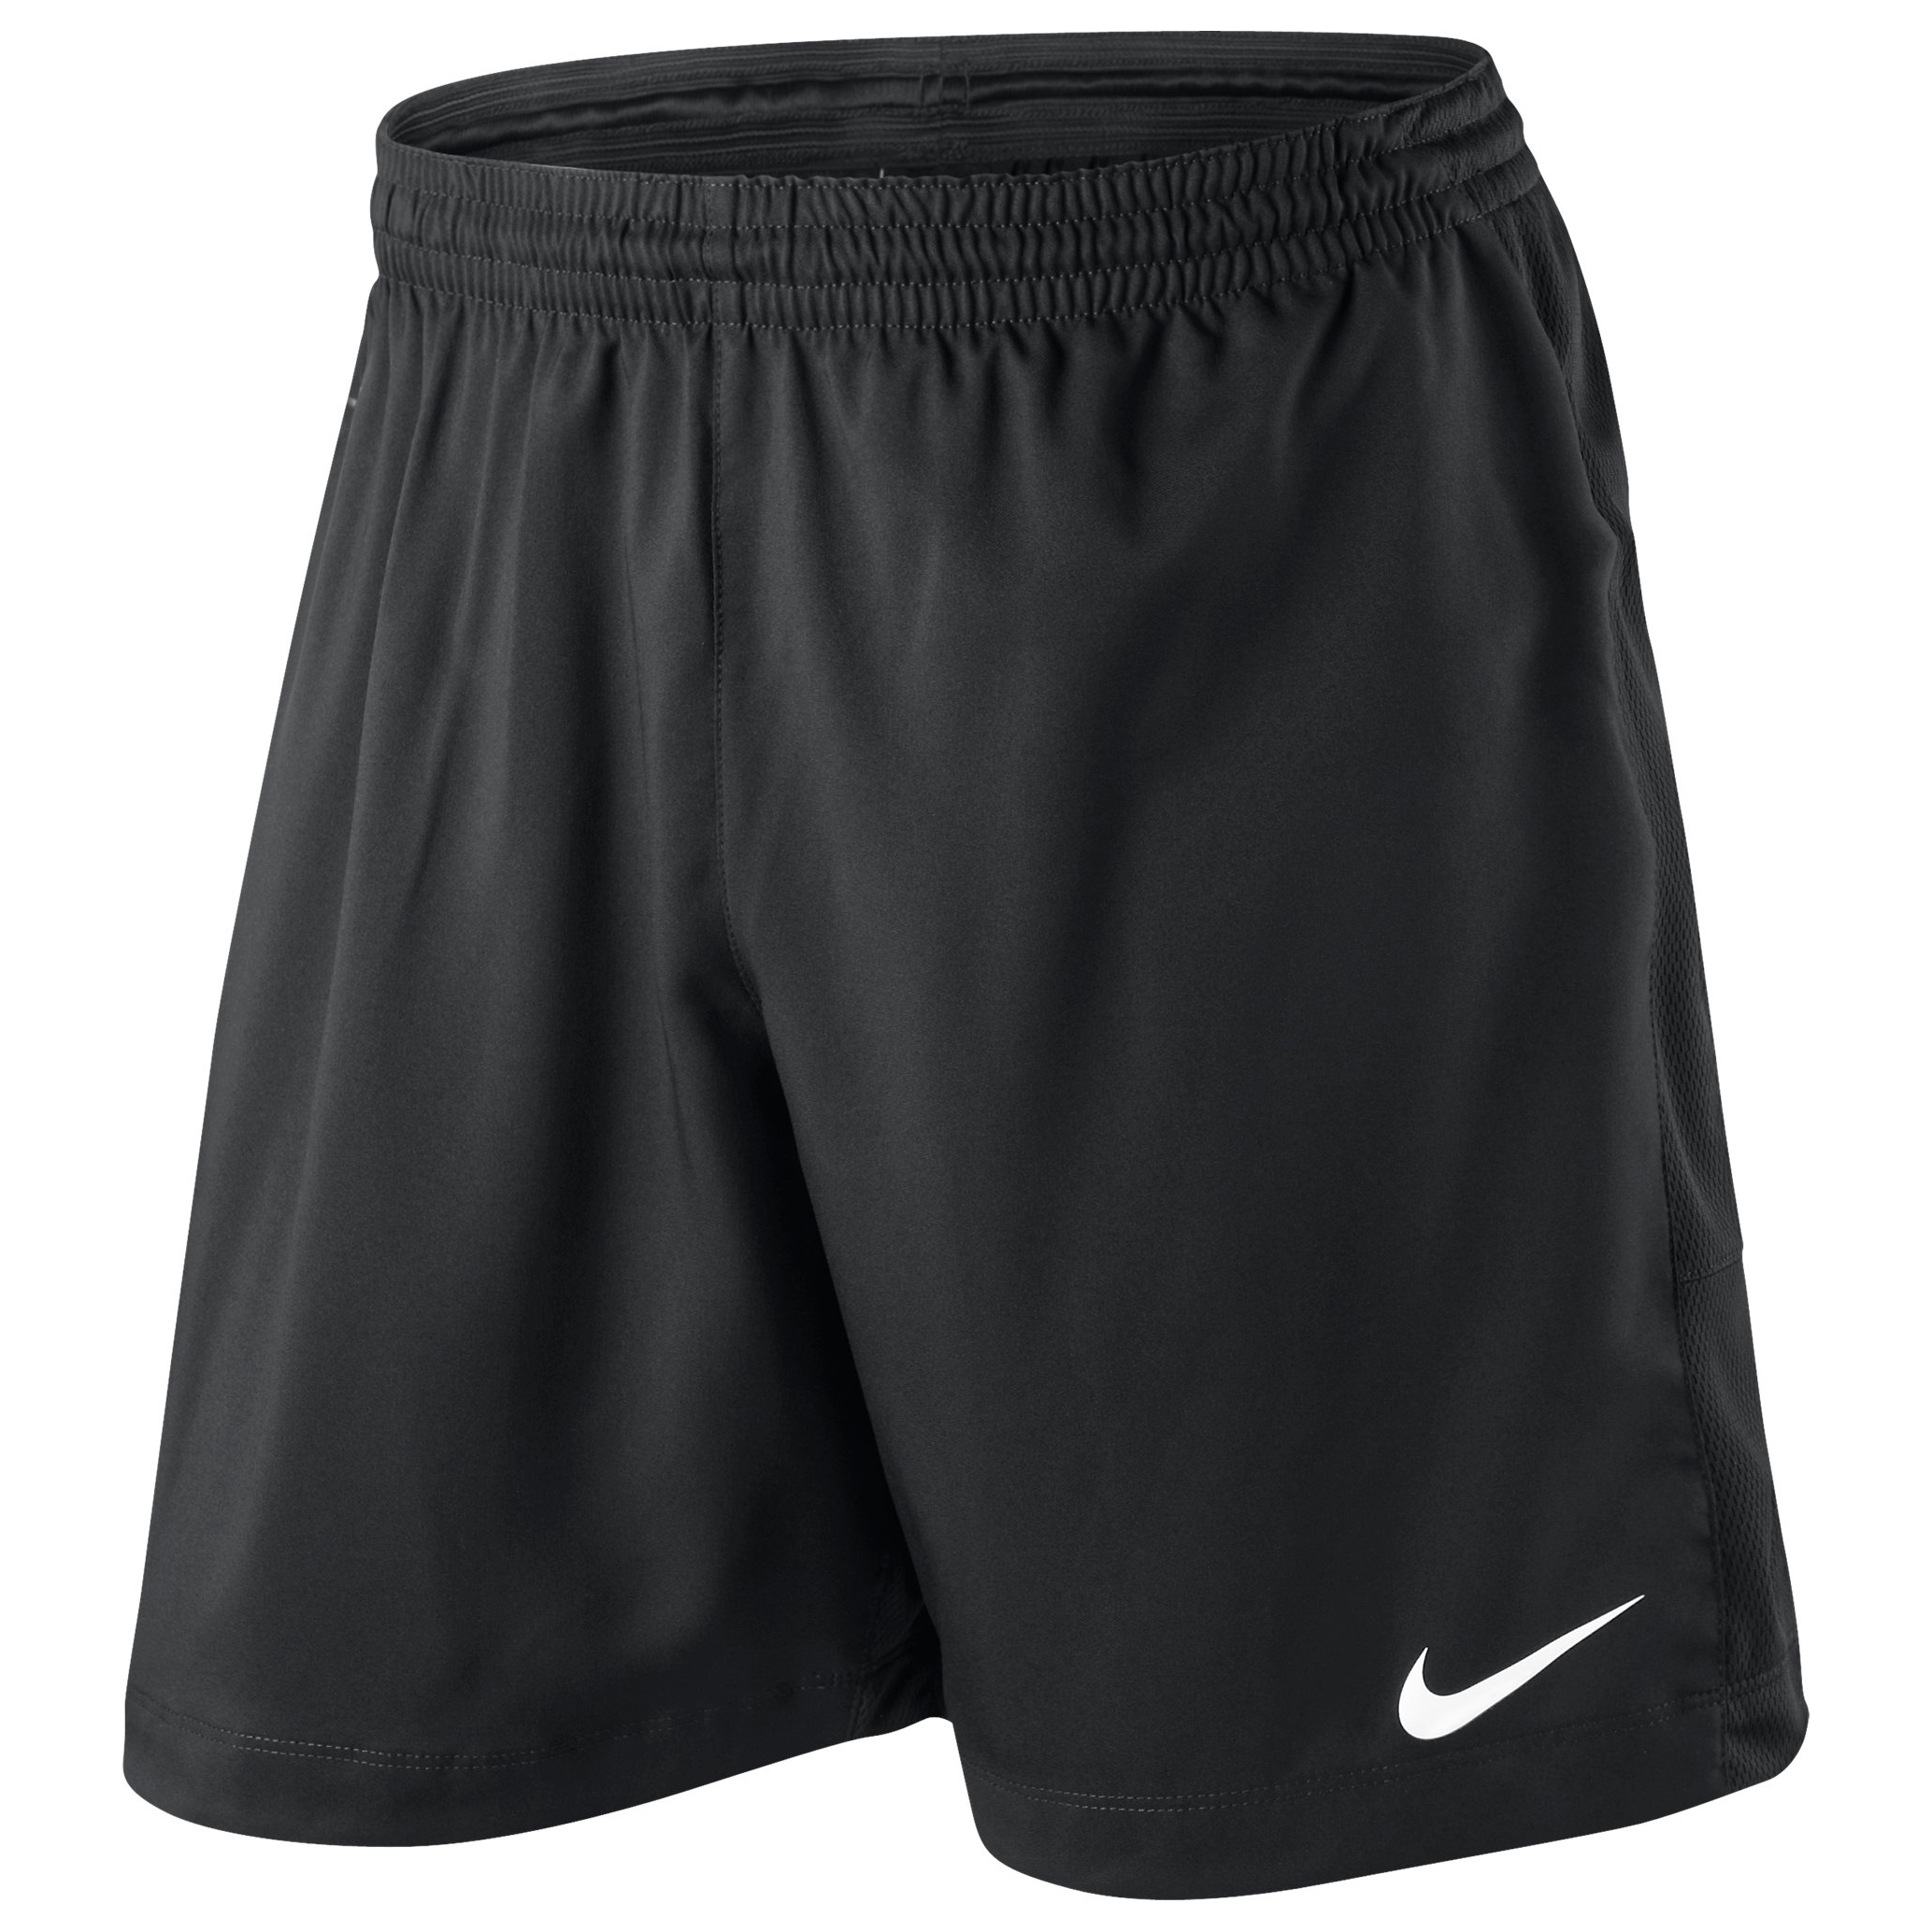 Nike Training Short - Black/White